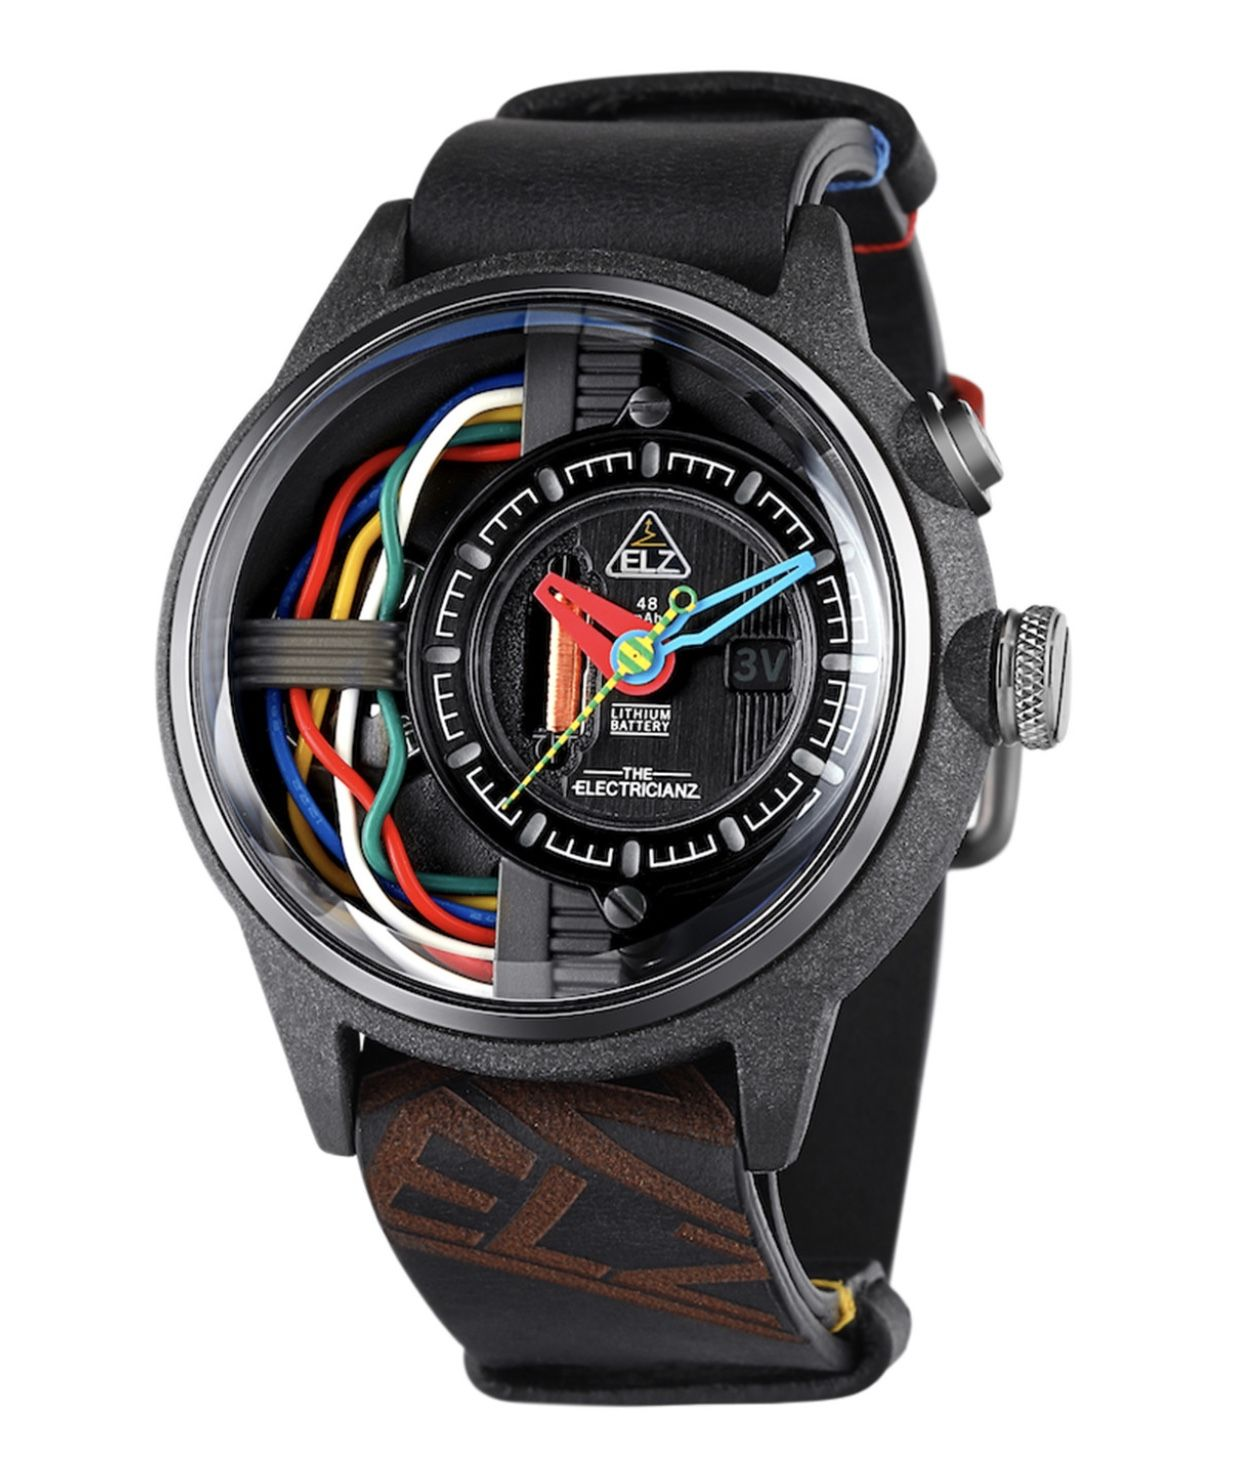 Pin by Mikestudio 56 on WATCHES,WATCHES,WATCHES! in 2020